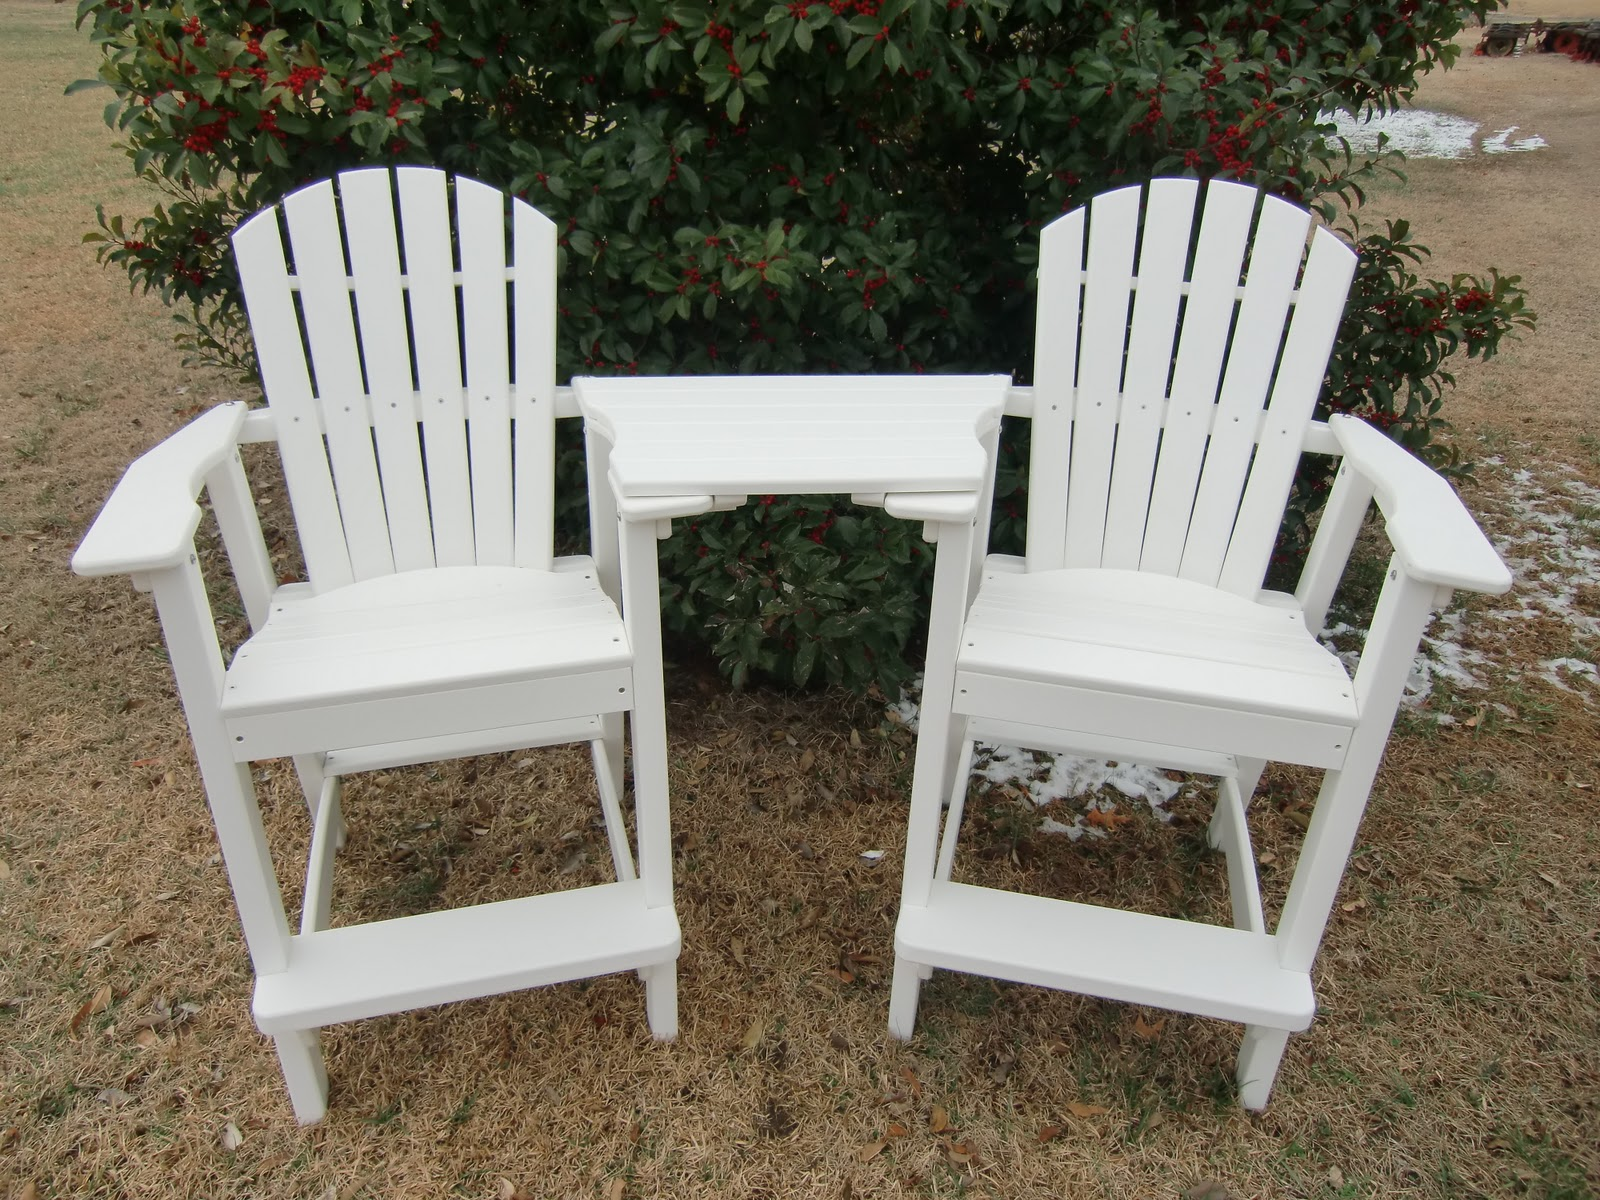 Luxury  Outdoor Adirondack Chair Our wood version of same great chair made of high quality pressure treated deck boards and the same ergonomic design and high